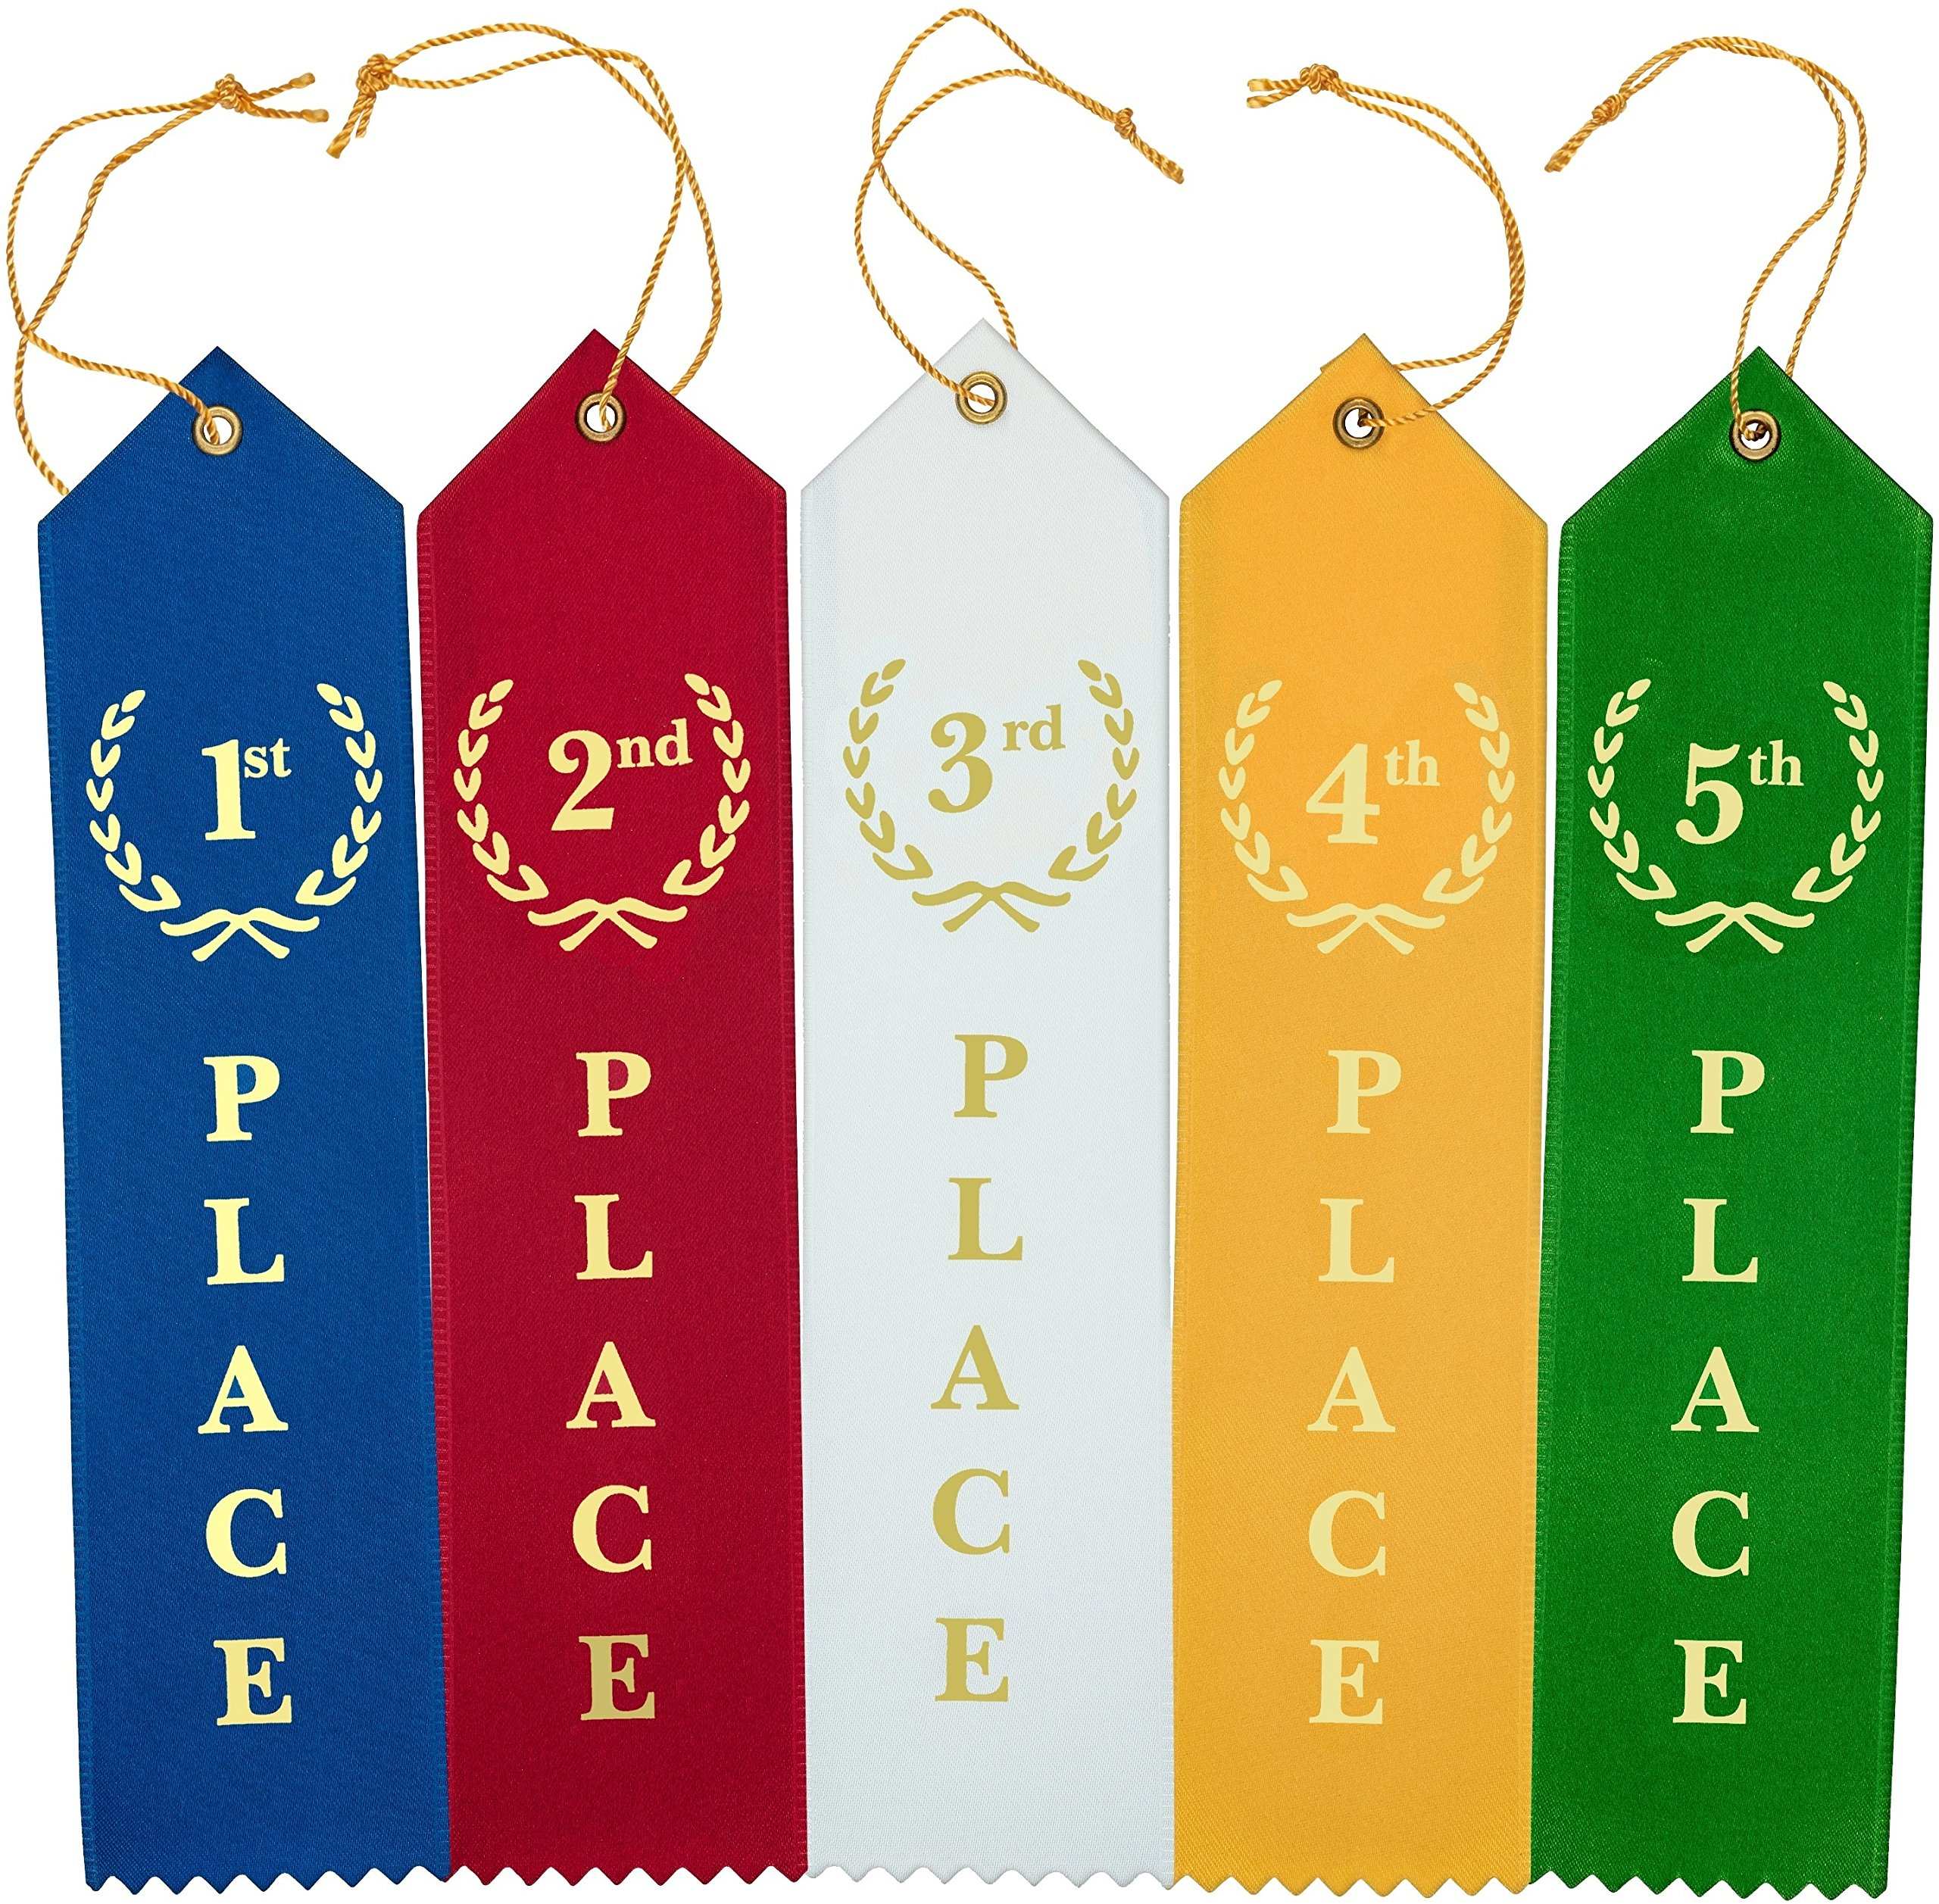 Flat Carded Award Ribbons 1st 2nd 3rd 4th 5th Place Set - Blue Red White Yellow Green with Event Card 12 Each - 60 Pack By Clinch Star